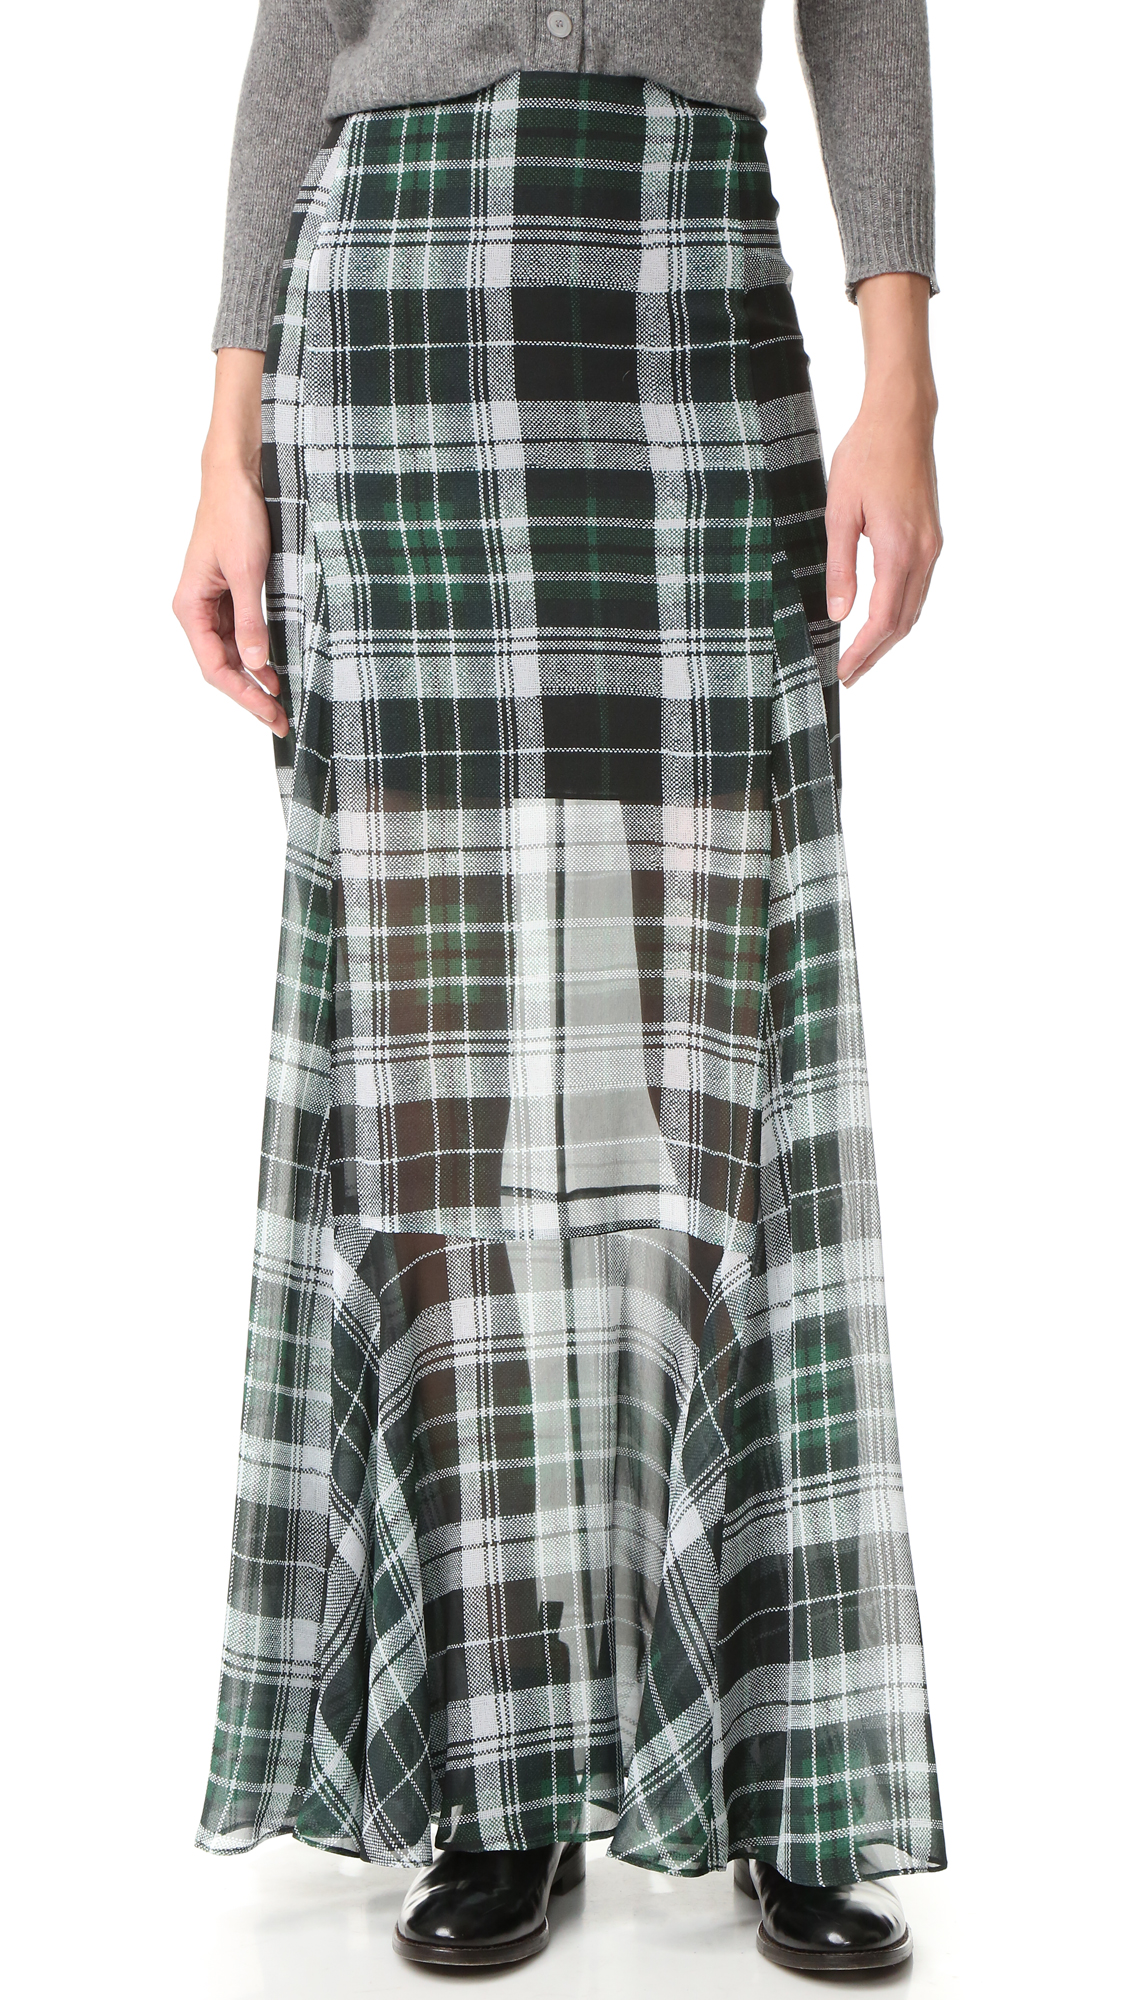 A plaid silk chiffon McQ   Alexander McQueen skirt with a fluid, airy drape. Hidden back zip. Lined to mid thigh. Fabric: Chiffon. Shell: 100% silk. Lining: 97% polyester/3% elastane. Dry clean. Imported, China. Measurements Length: 42.5in / 108cm Measurements